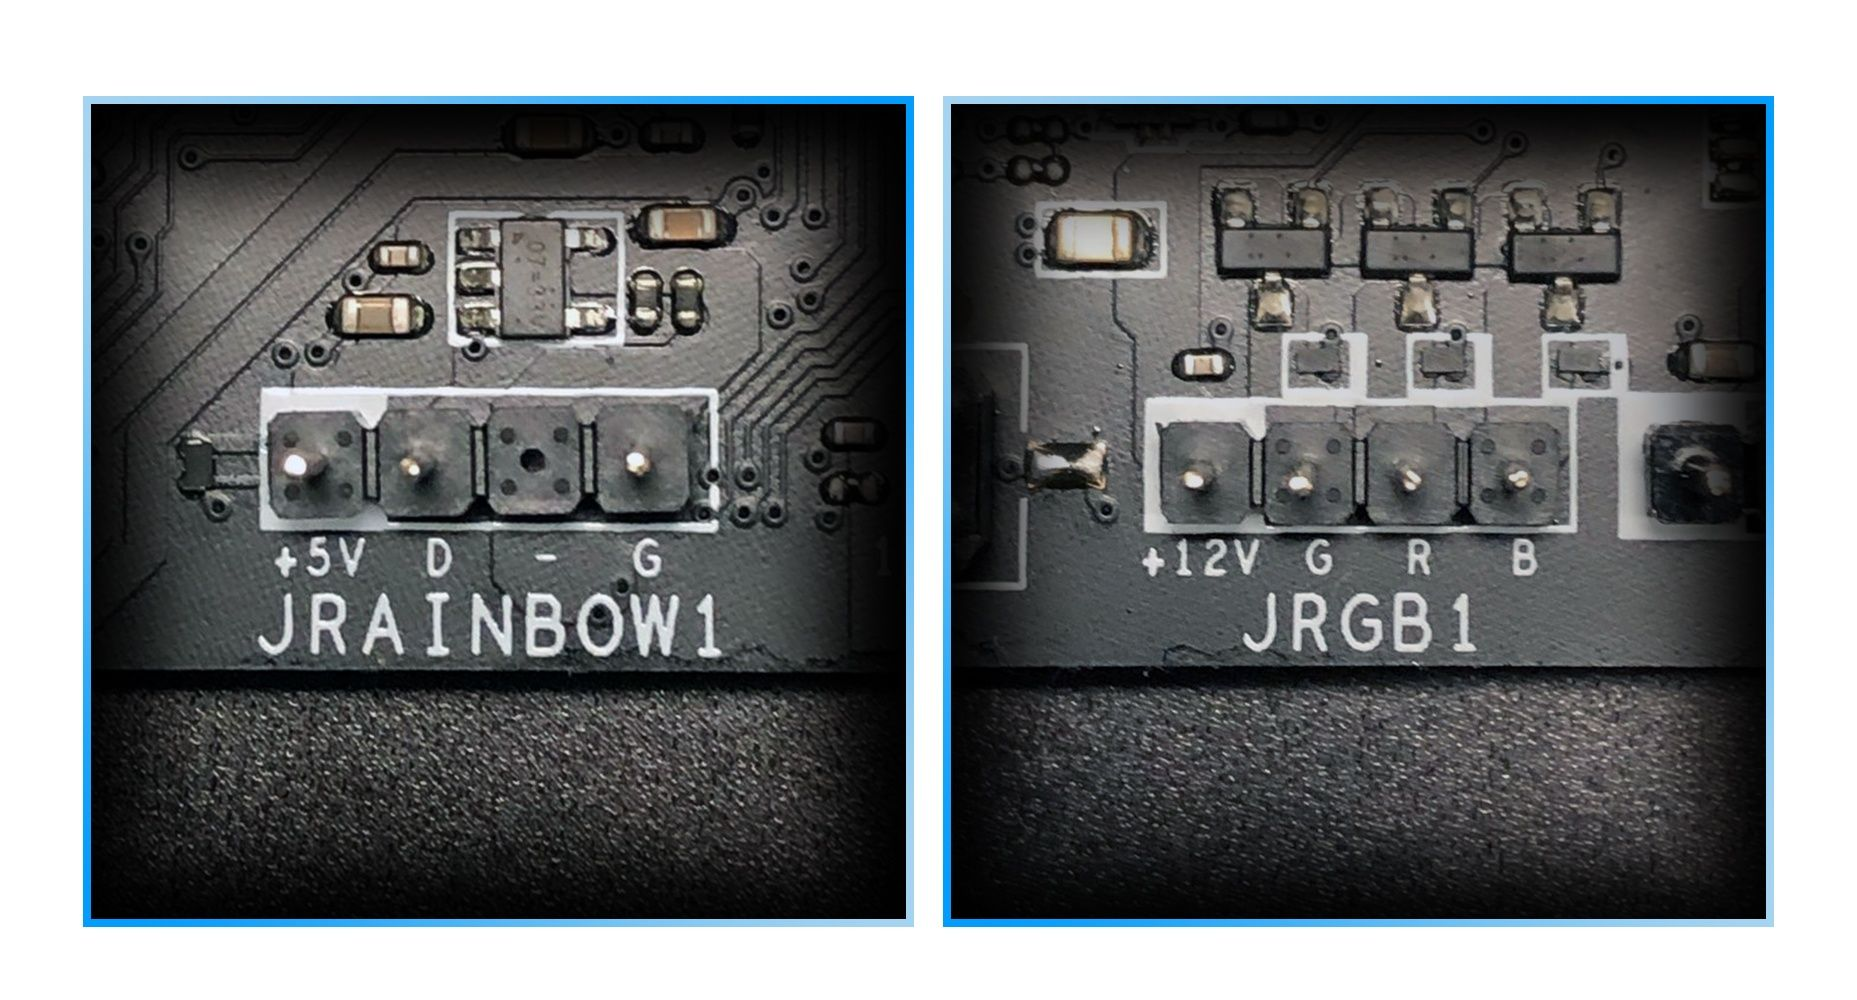 MSI B460M PRO-VDH EXTEND YOUR RGB EXPERIENCE WITH EASE